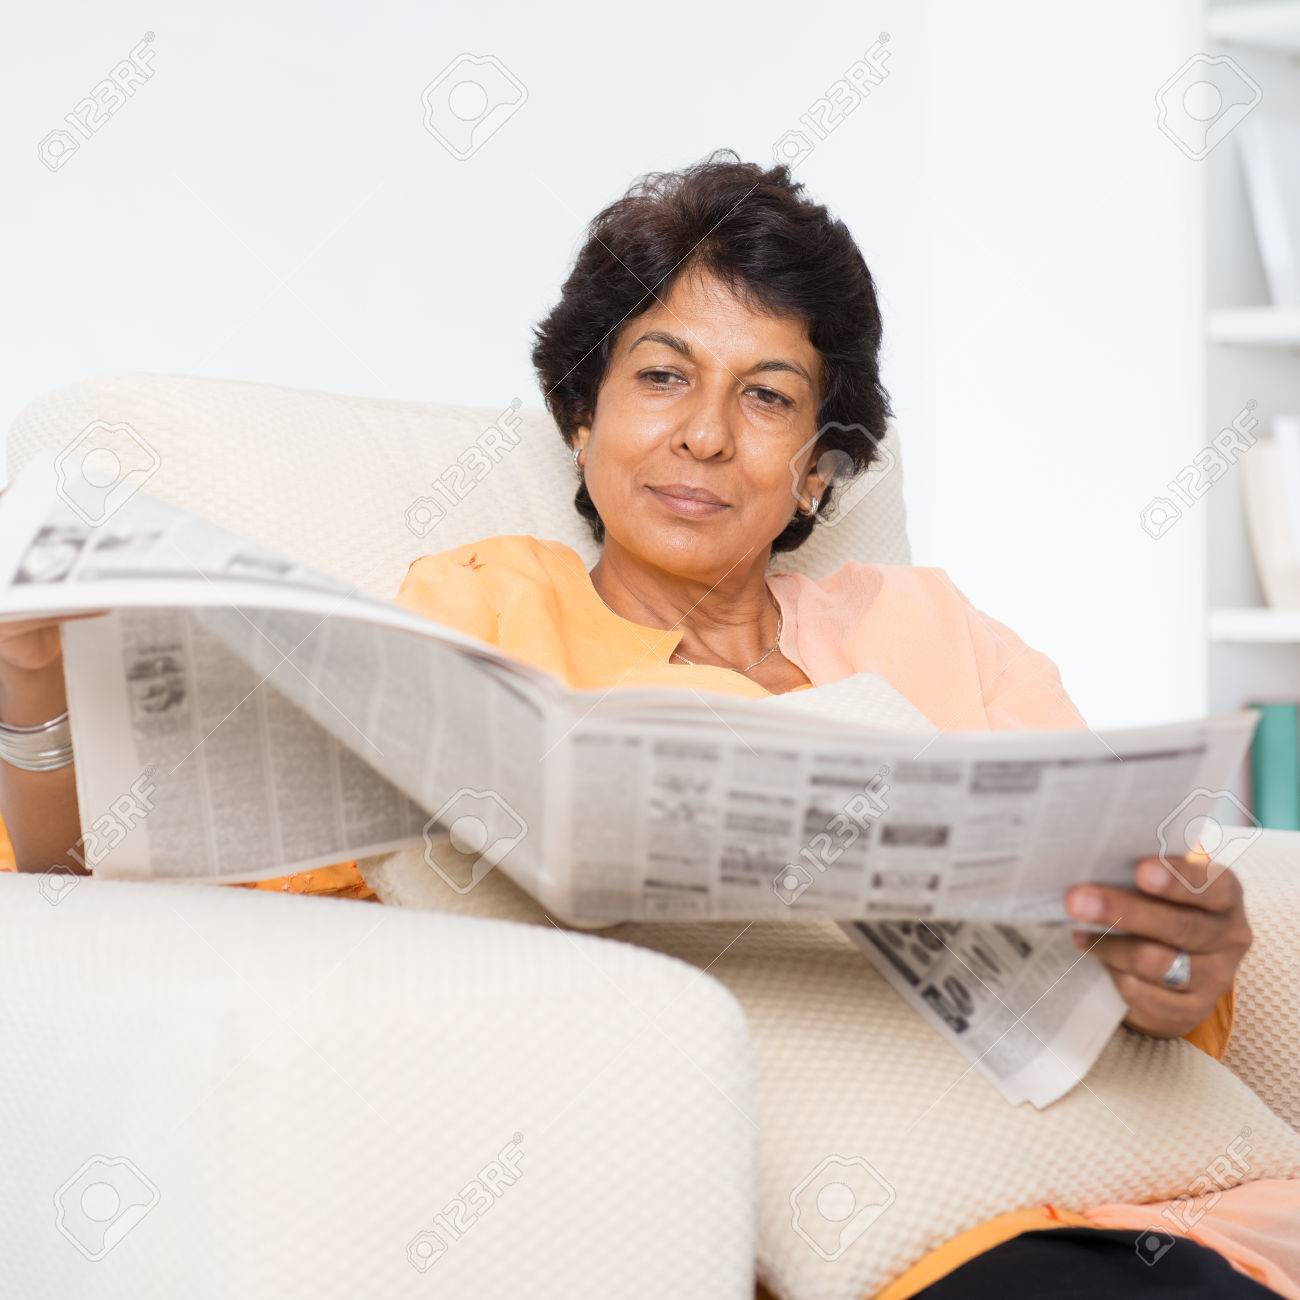 portrait of a 50s indian mature woman reading newspaper, sitting